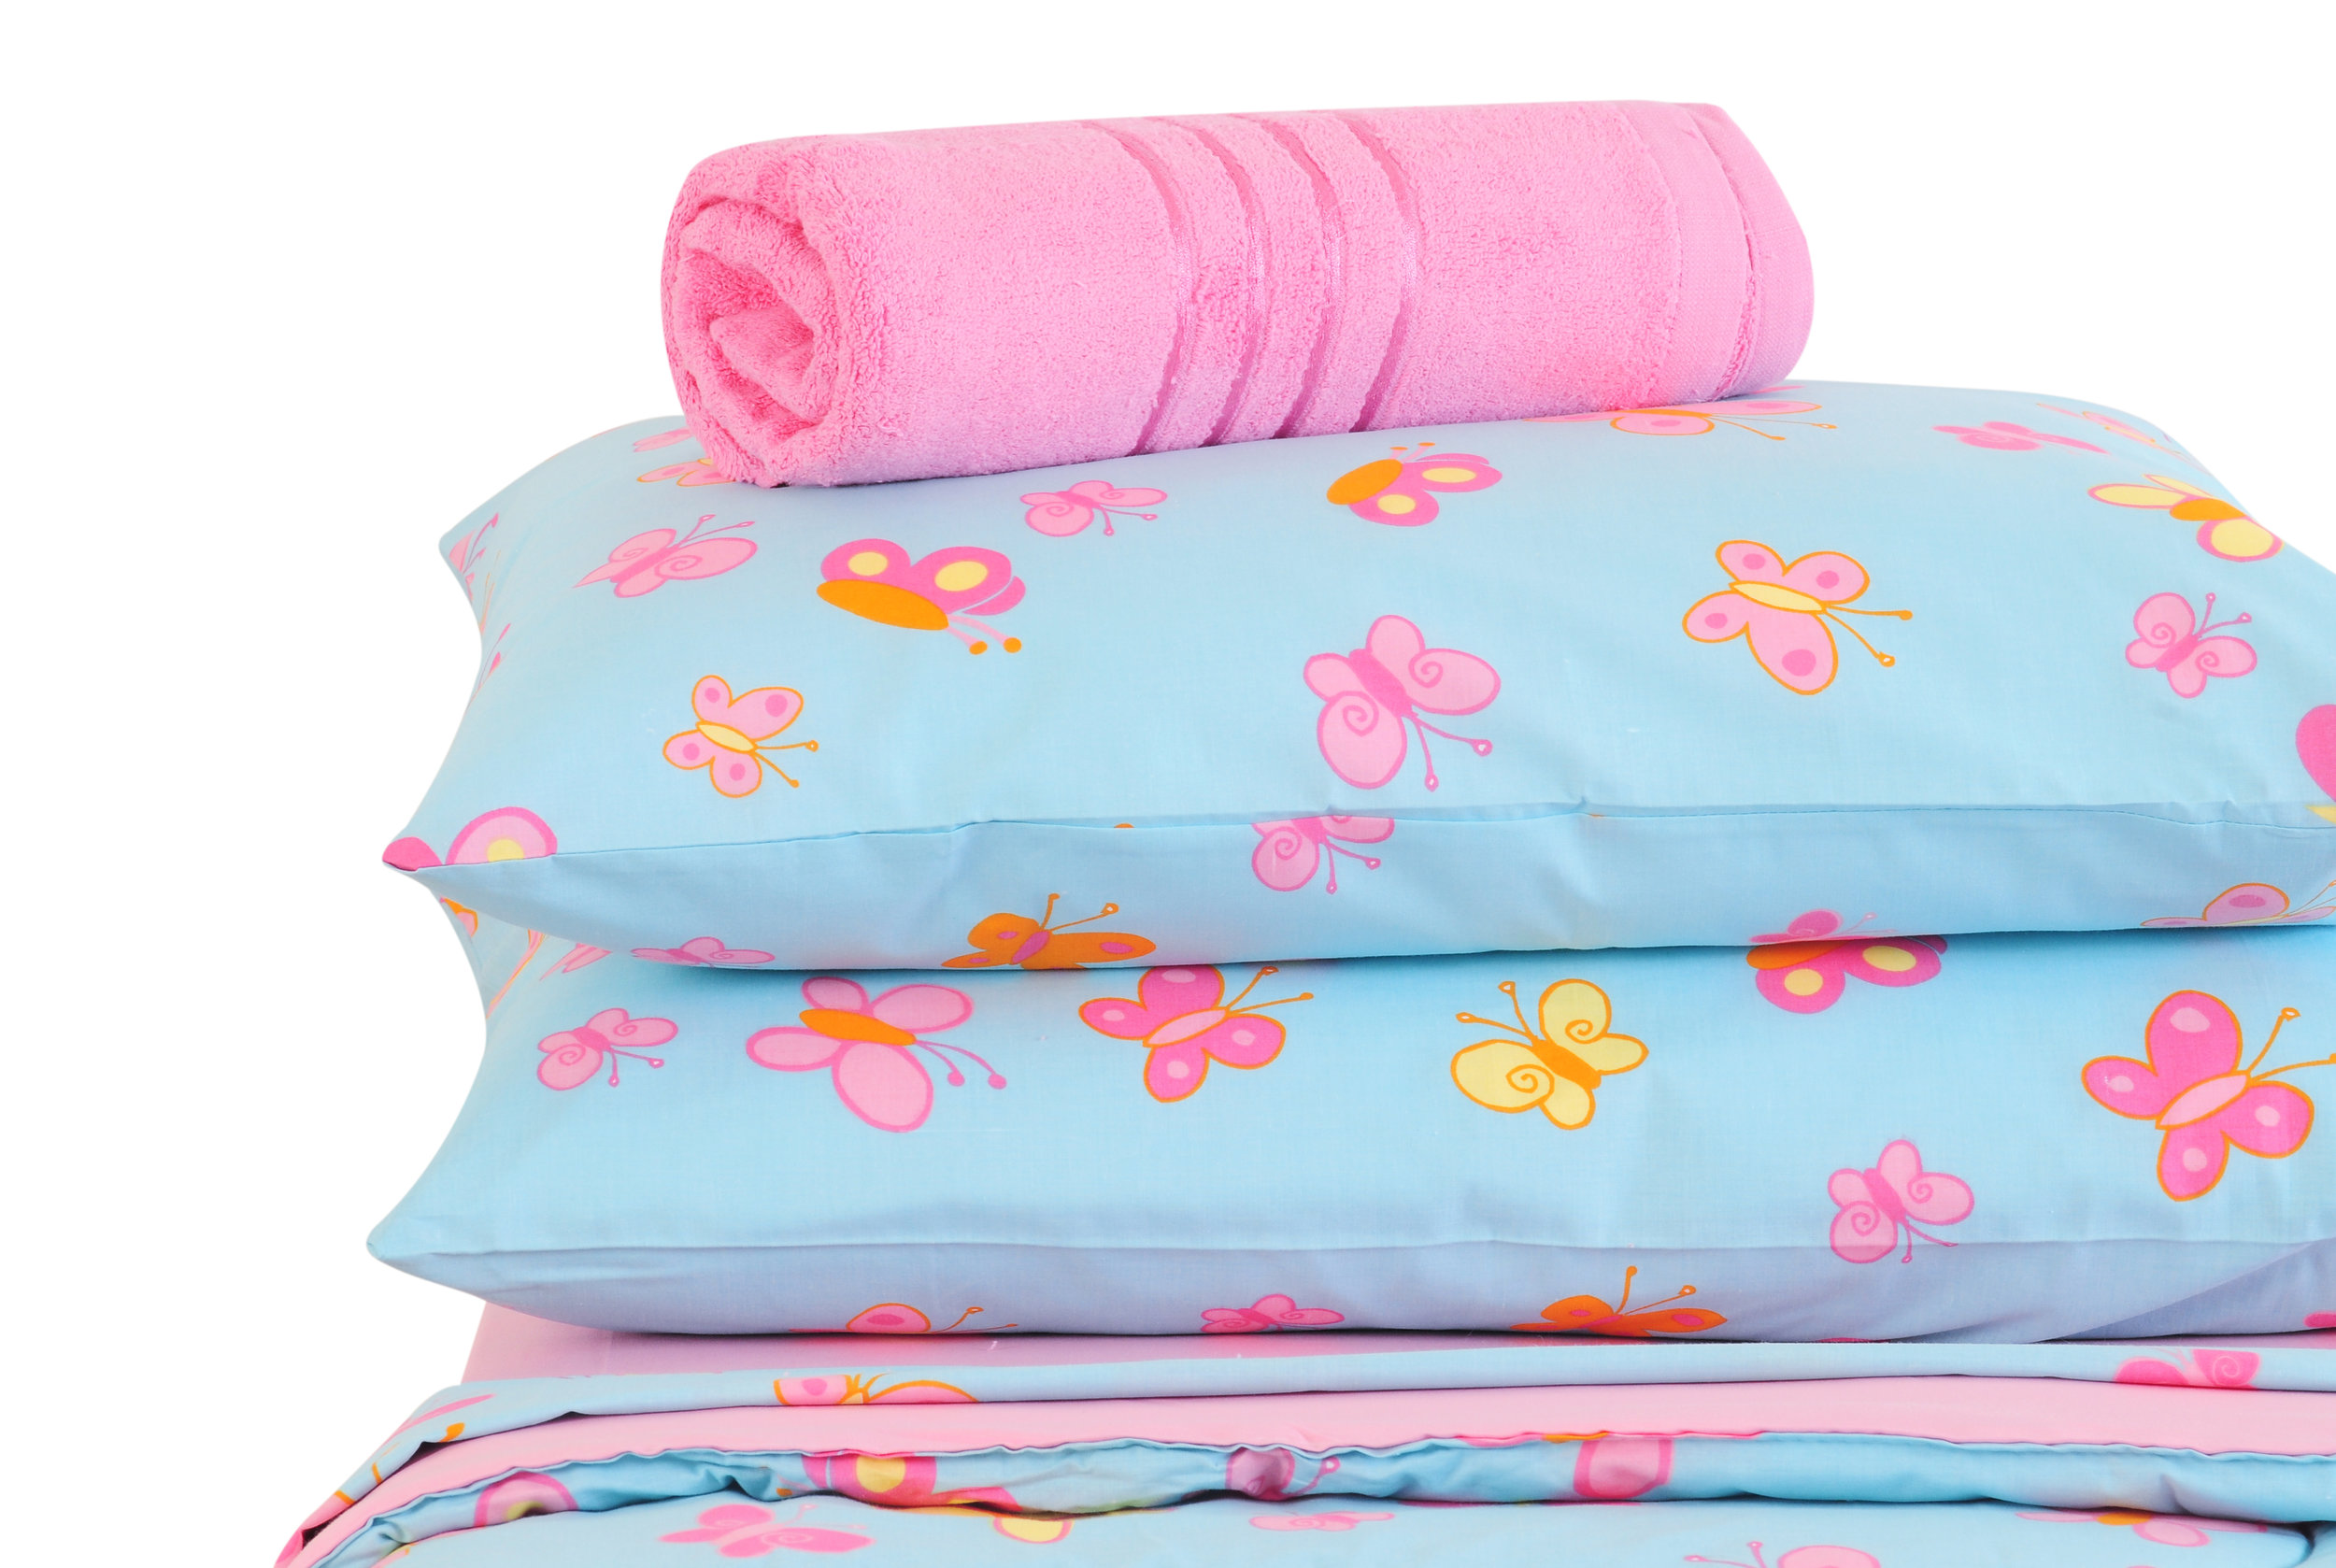 Fun Bed Sheet Sets